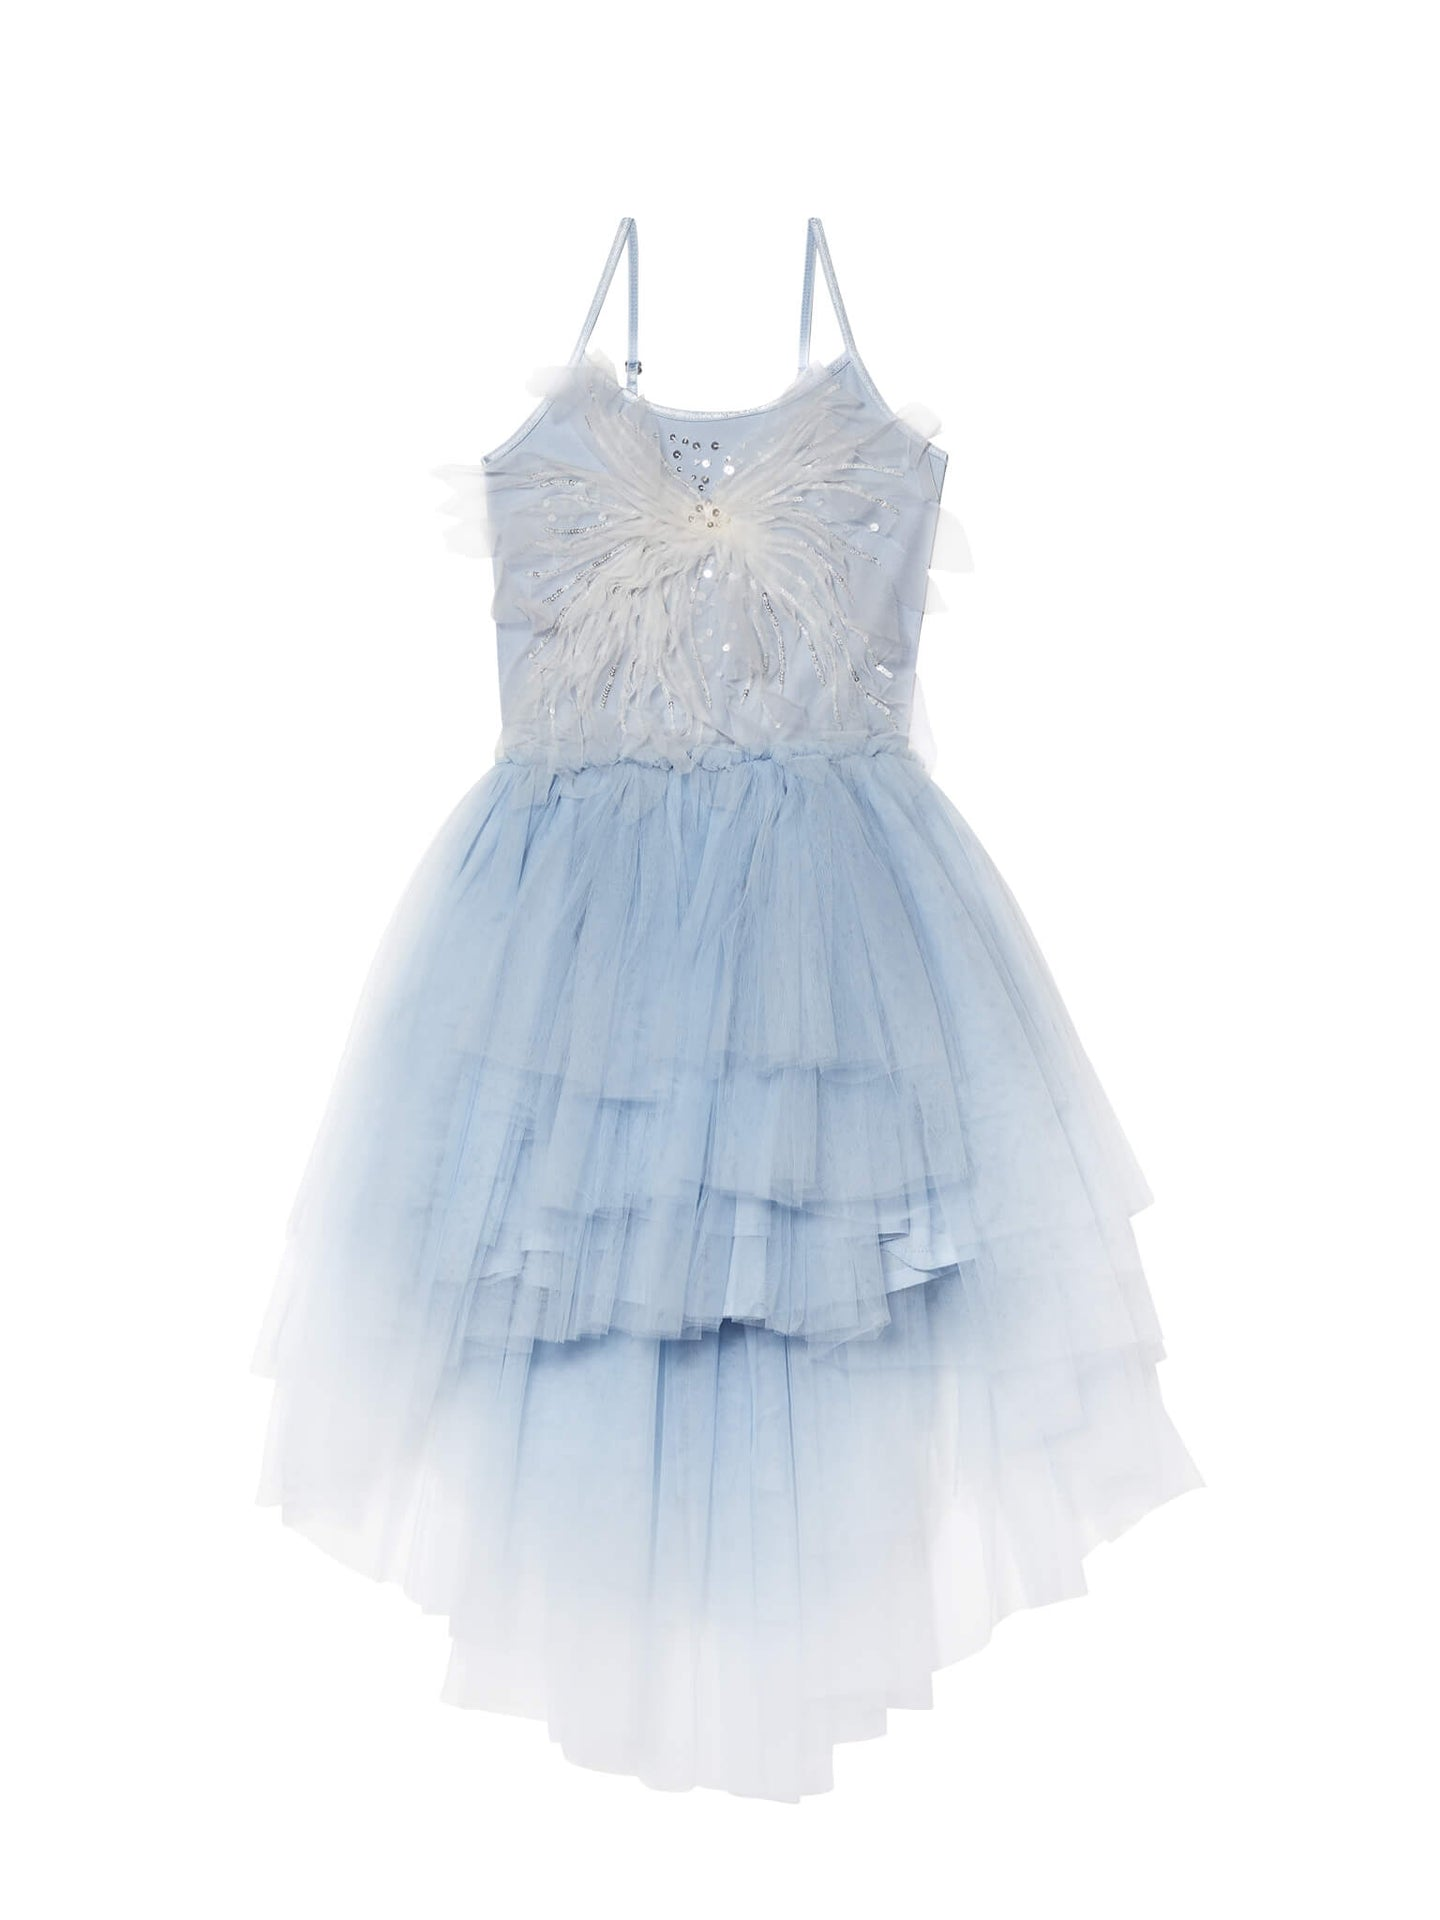 Tutu Du Monde - Let It Snow Tutu Dress